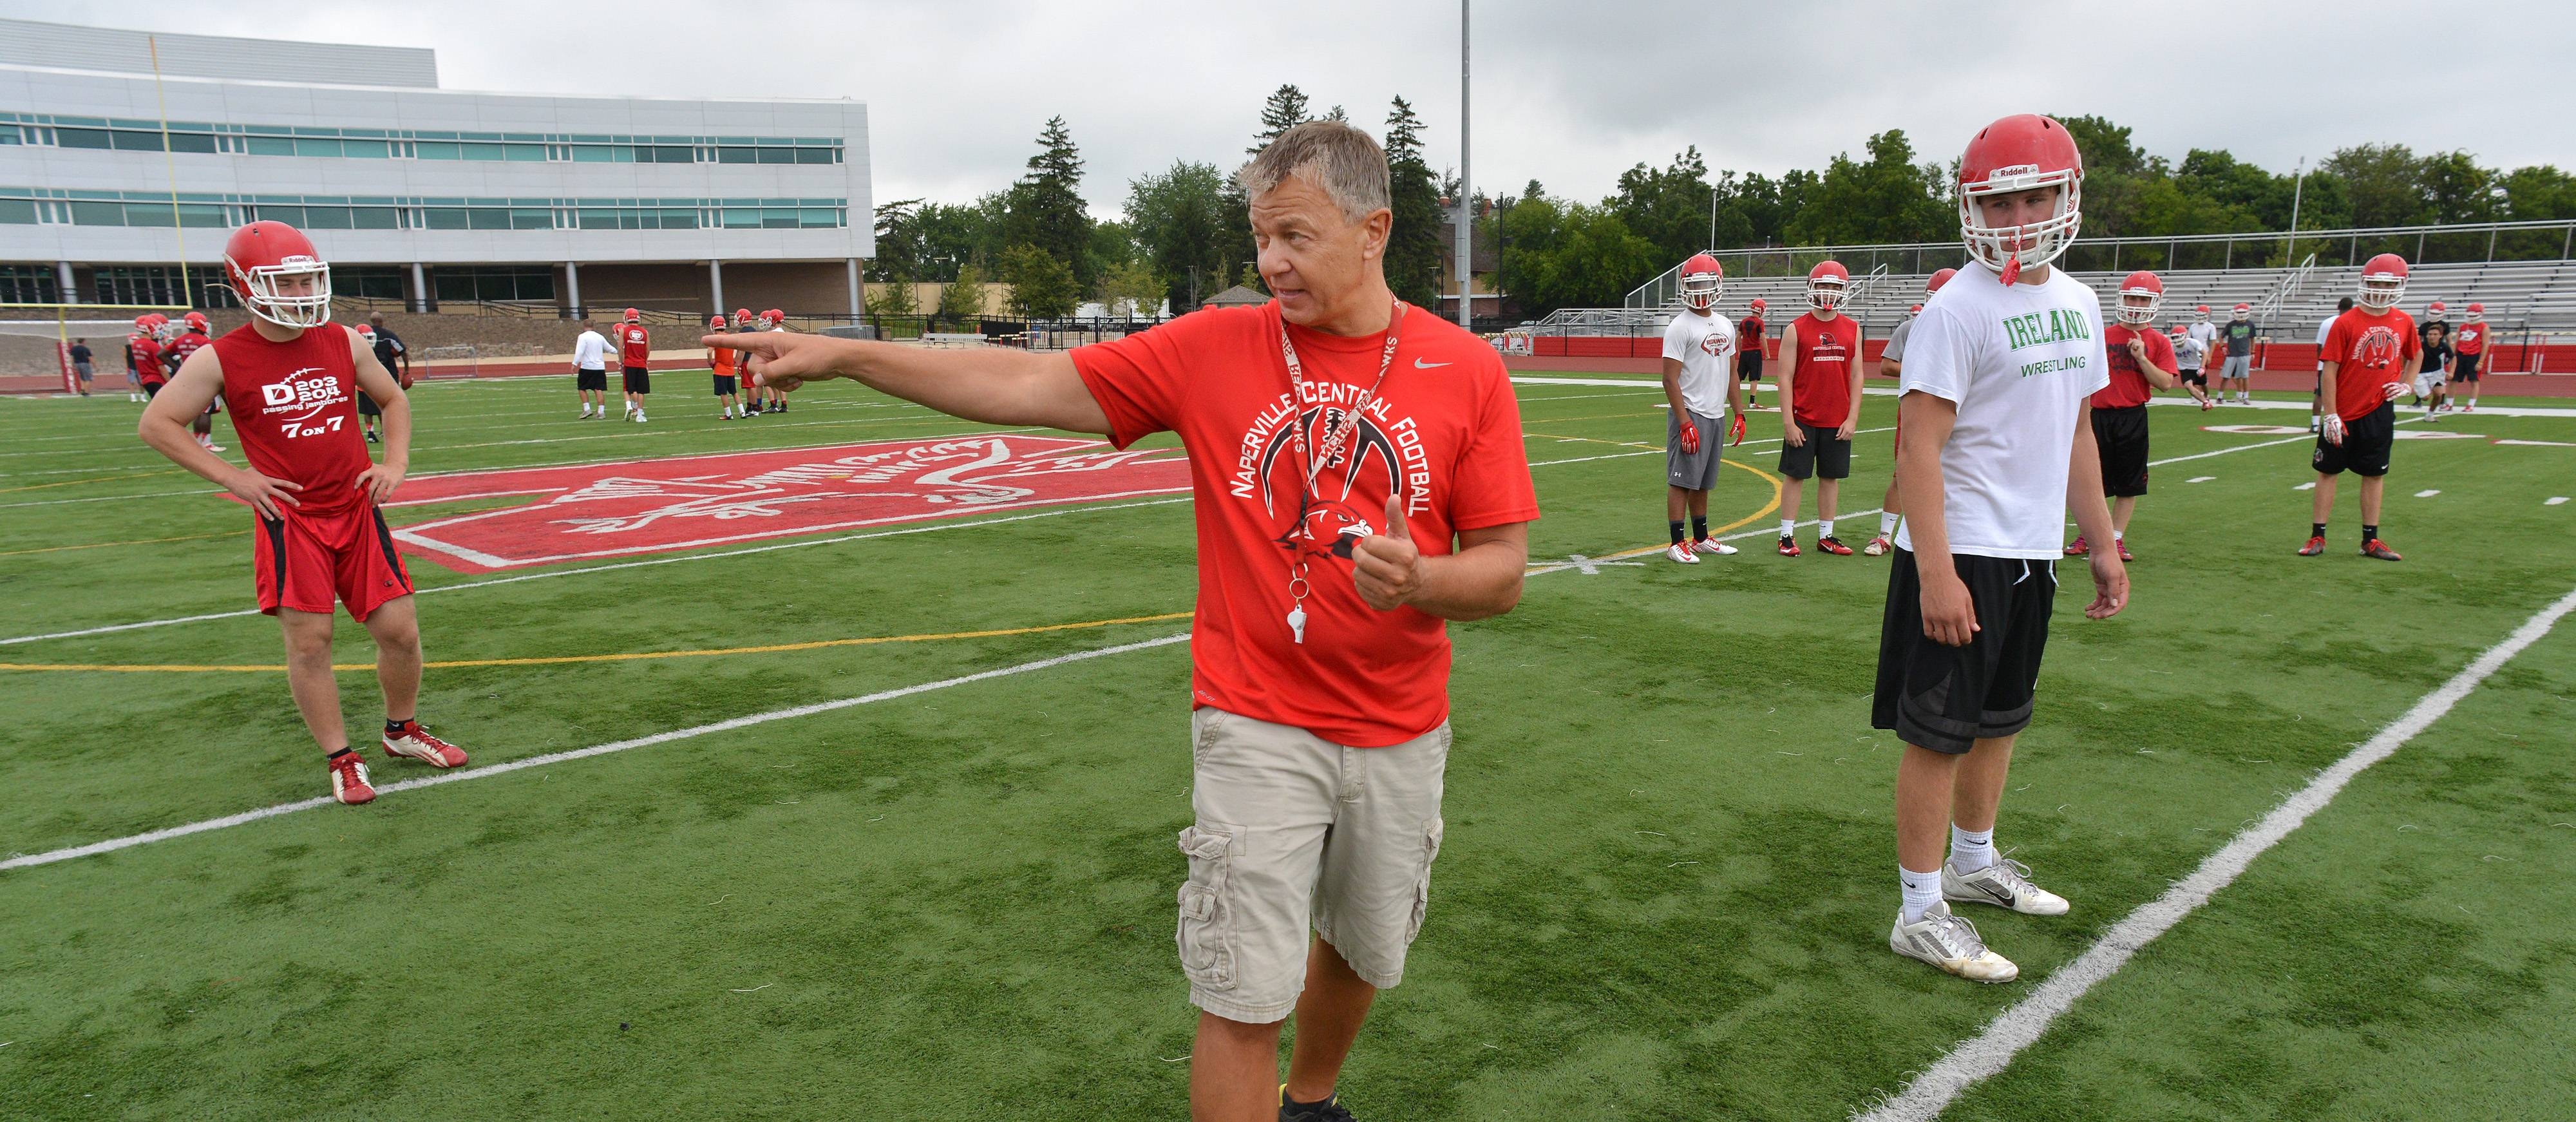 Naperville Central High School's football team works Monday out on the first official day of practice. Head coach Mike Stine shows where players are to set up.